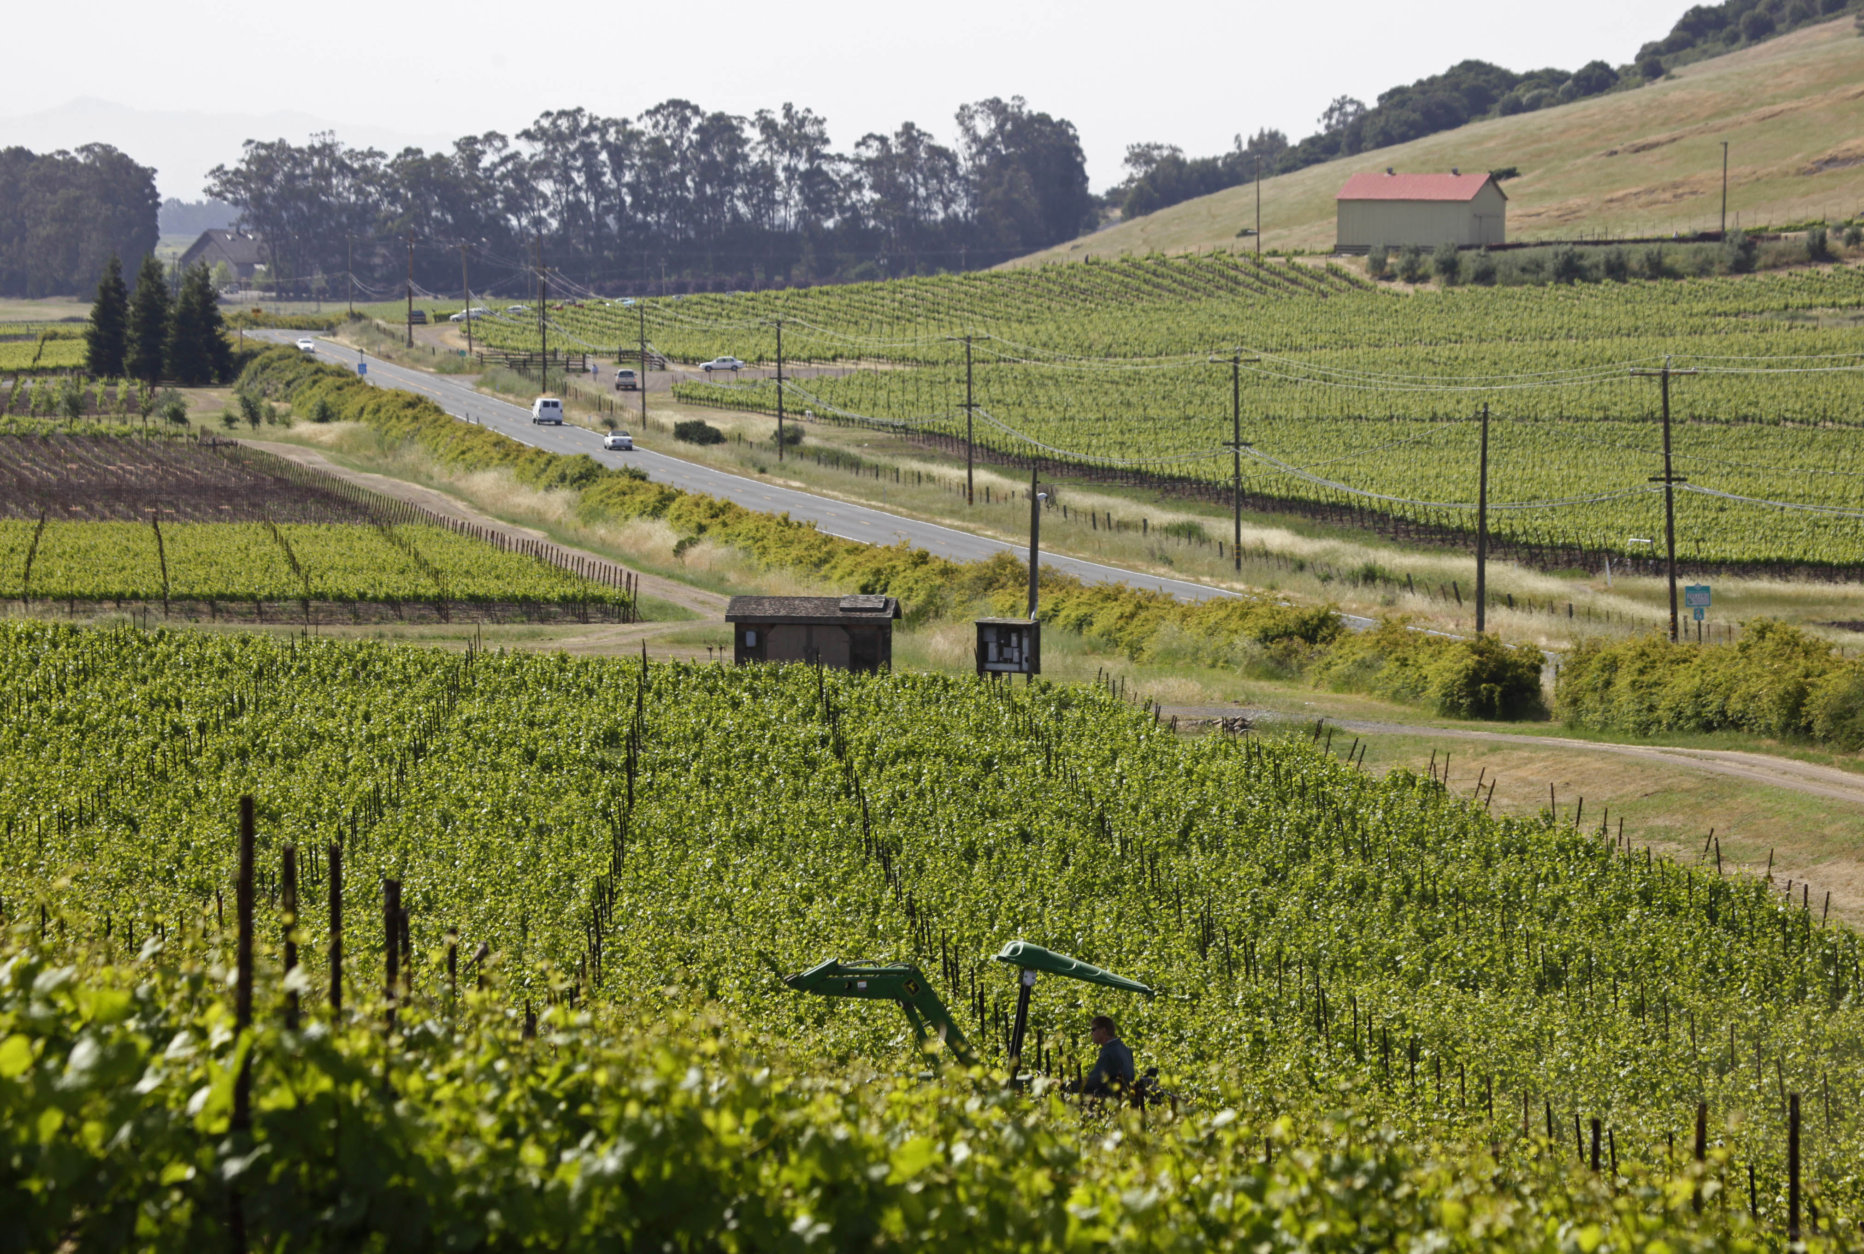 This May 11, 2009 file photo shows a tractor as it makes its way through a vineyard with Highway 121 and other vineyards in the background in Sonoma, Calif.  Sonoma, in the heart of California wine country, is famous for award-winning wine and food and scenic country roads.   (AP Photo/Eric Risberg, FILE)